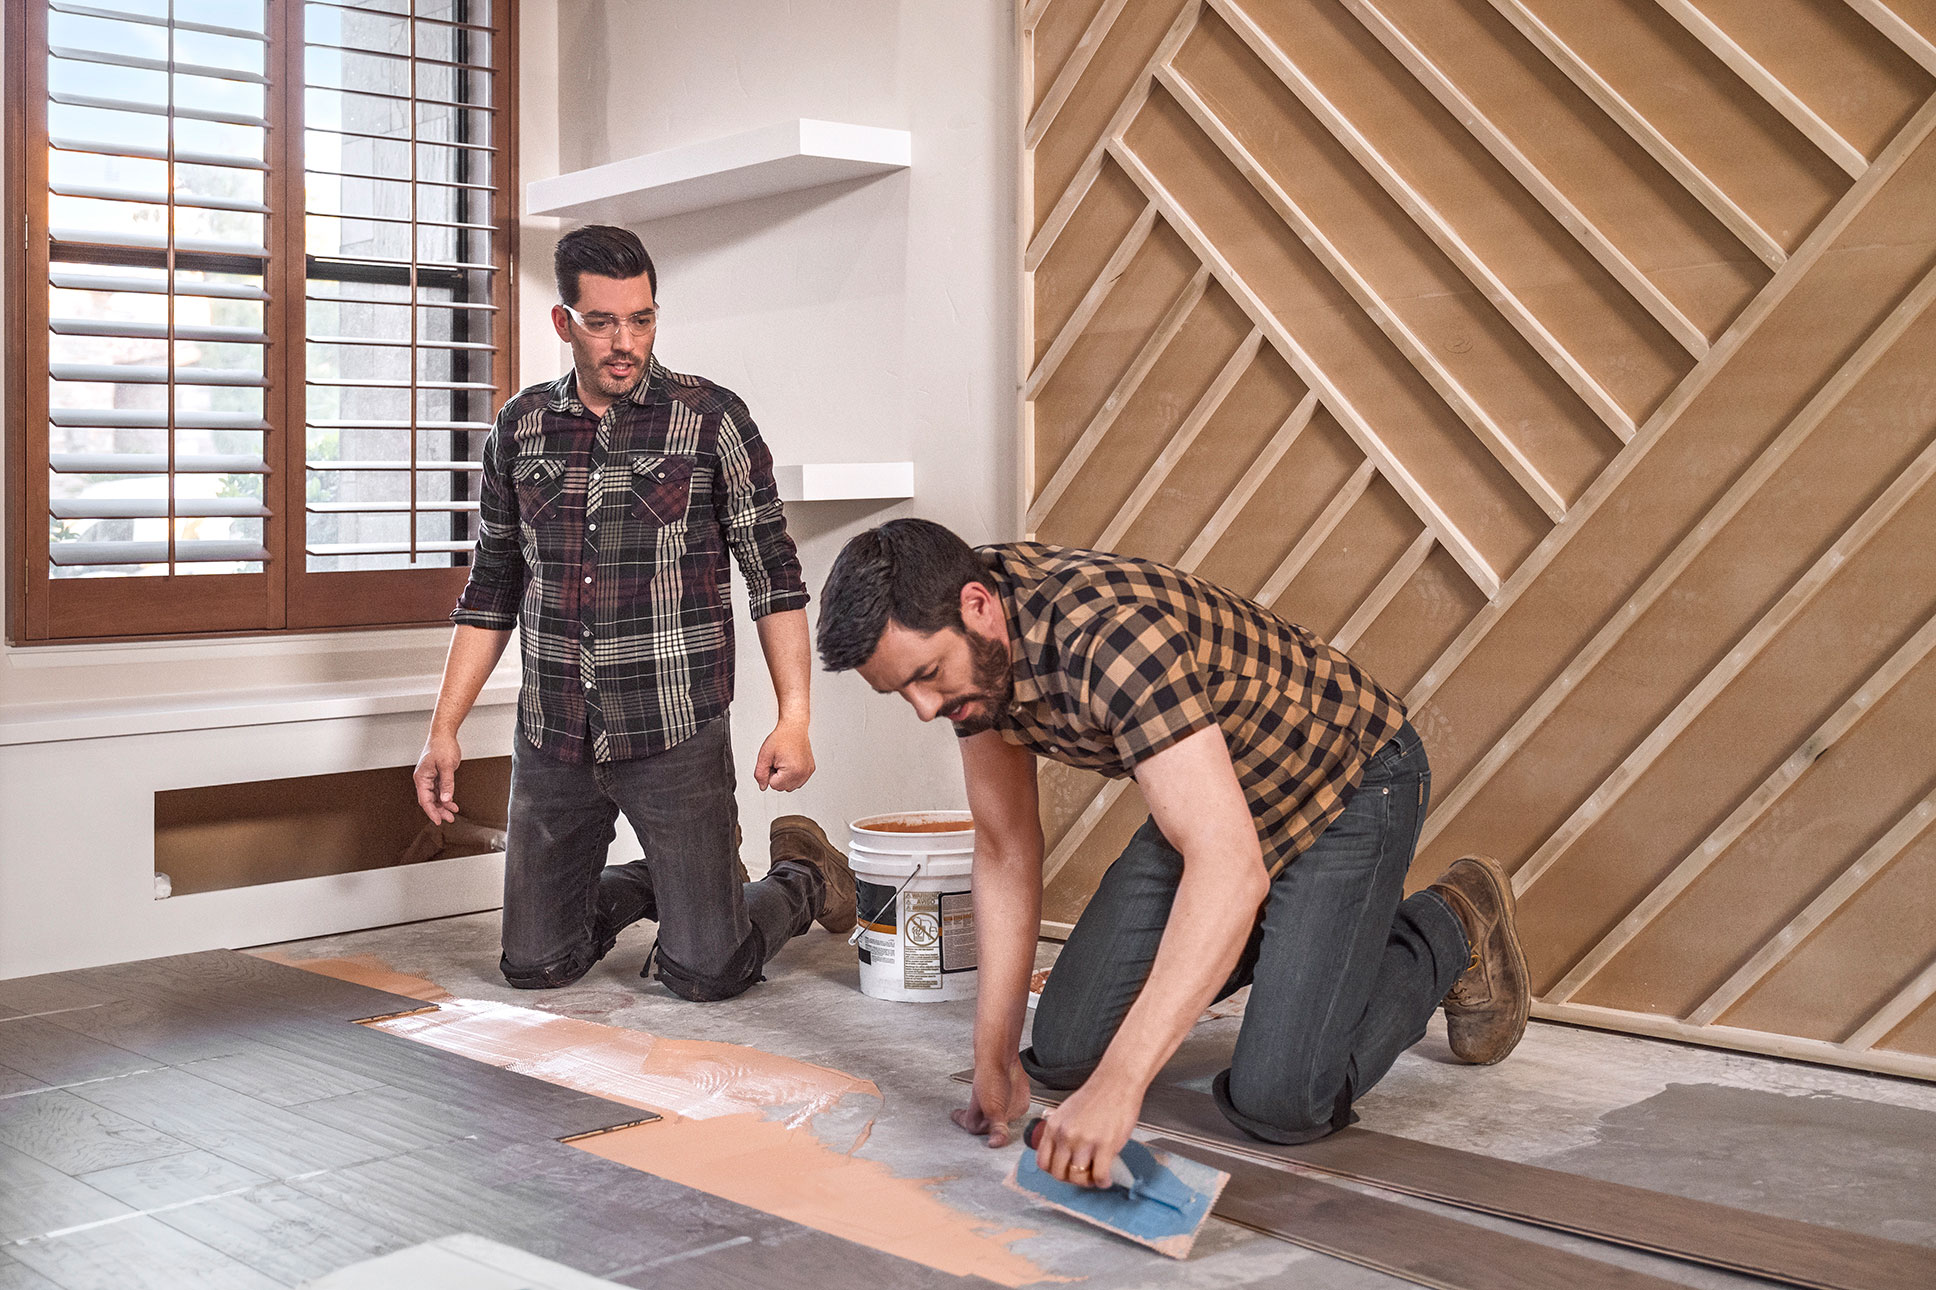 The Property Brothers' New Show Forever Home Will Have 'More Heart': 'We Love What We Do' property-brothers-forever-home-hgtv-1